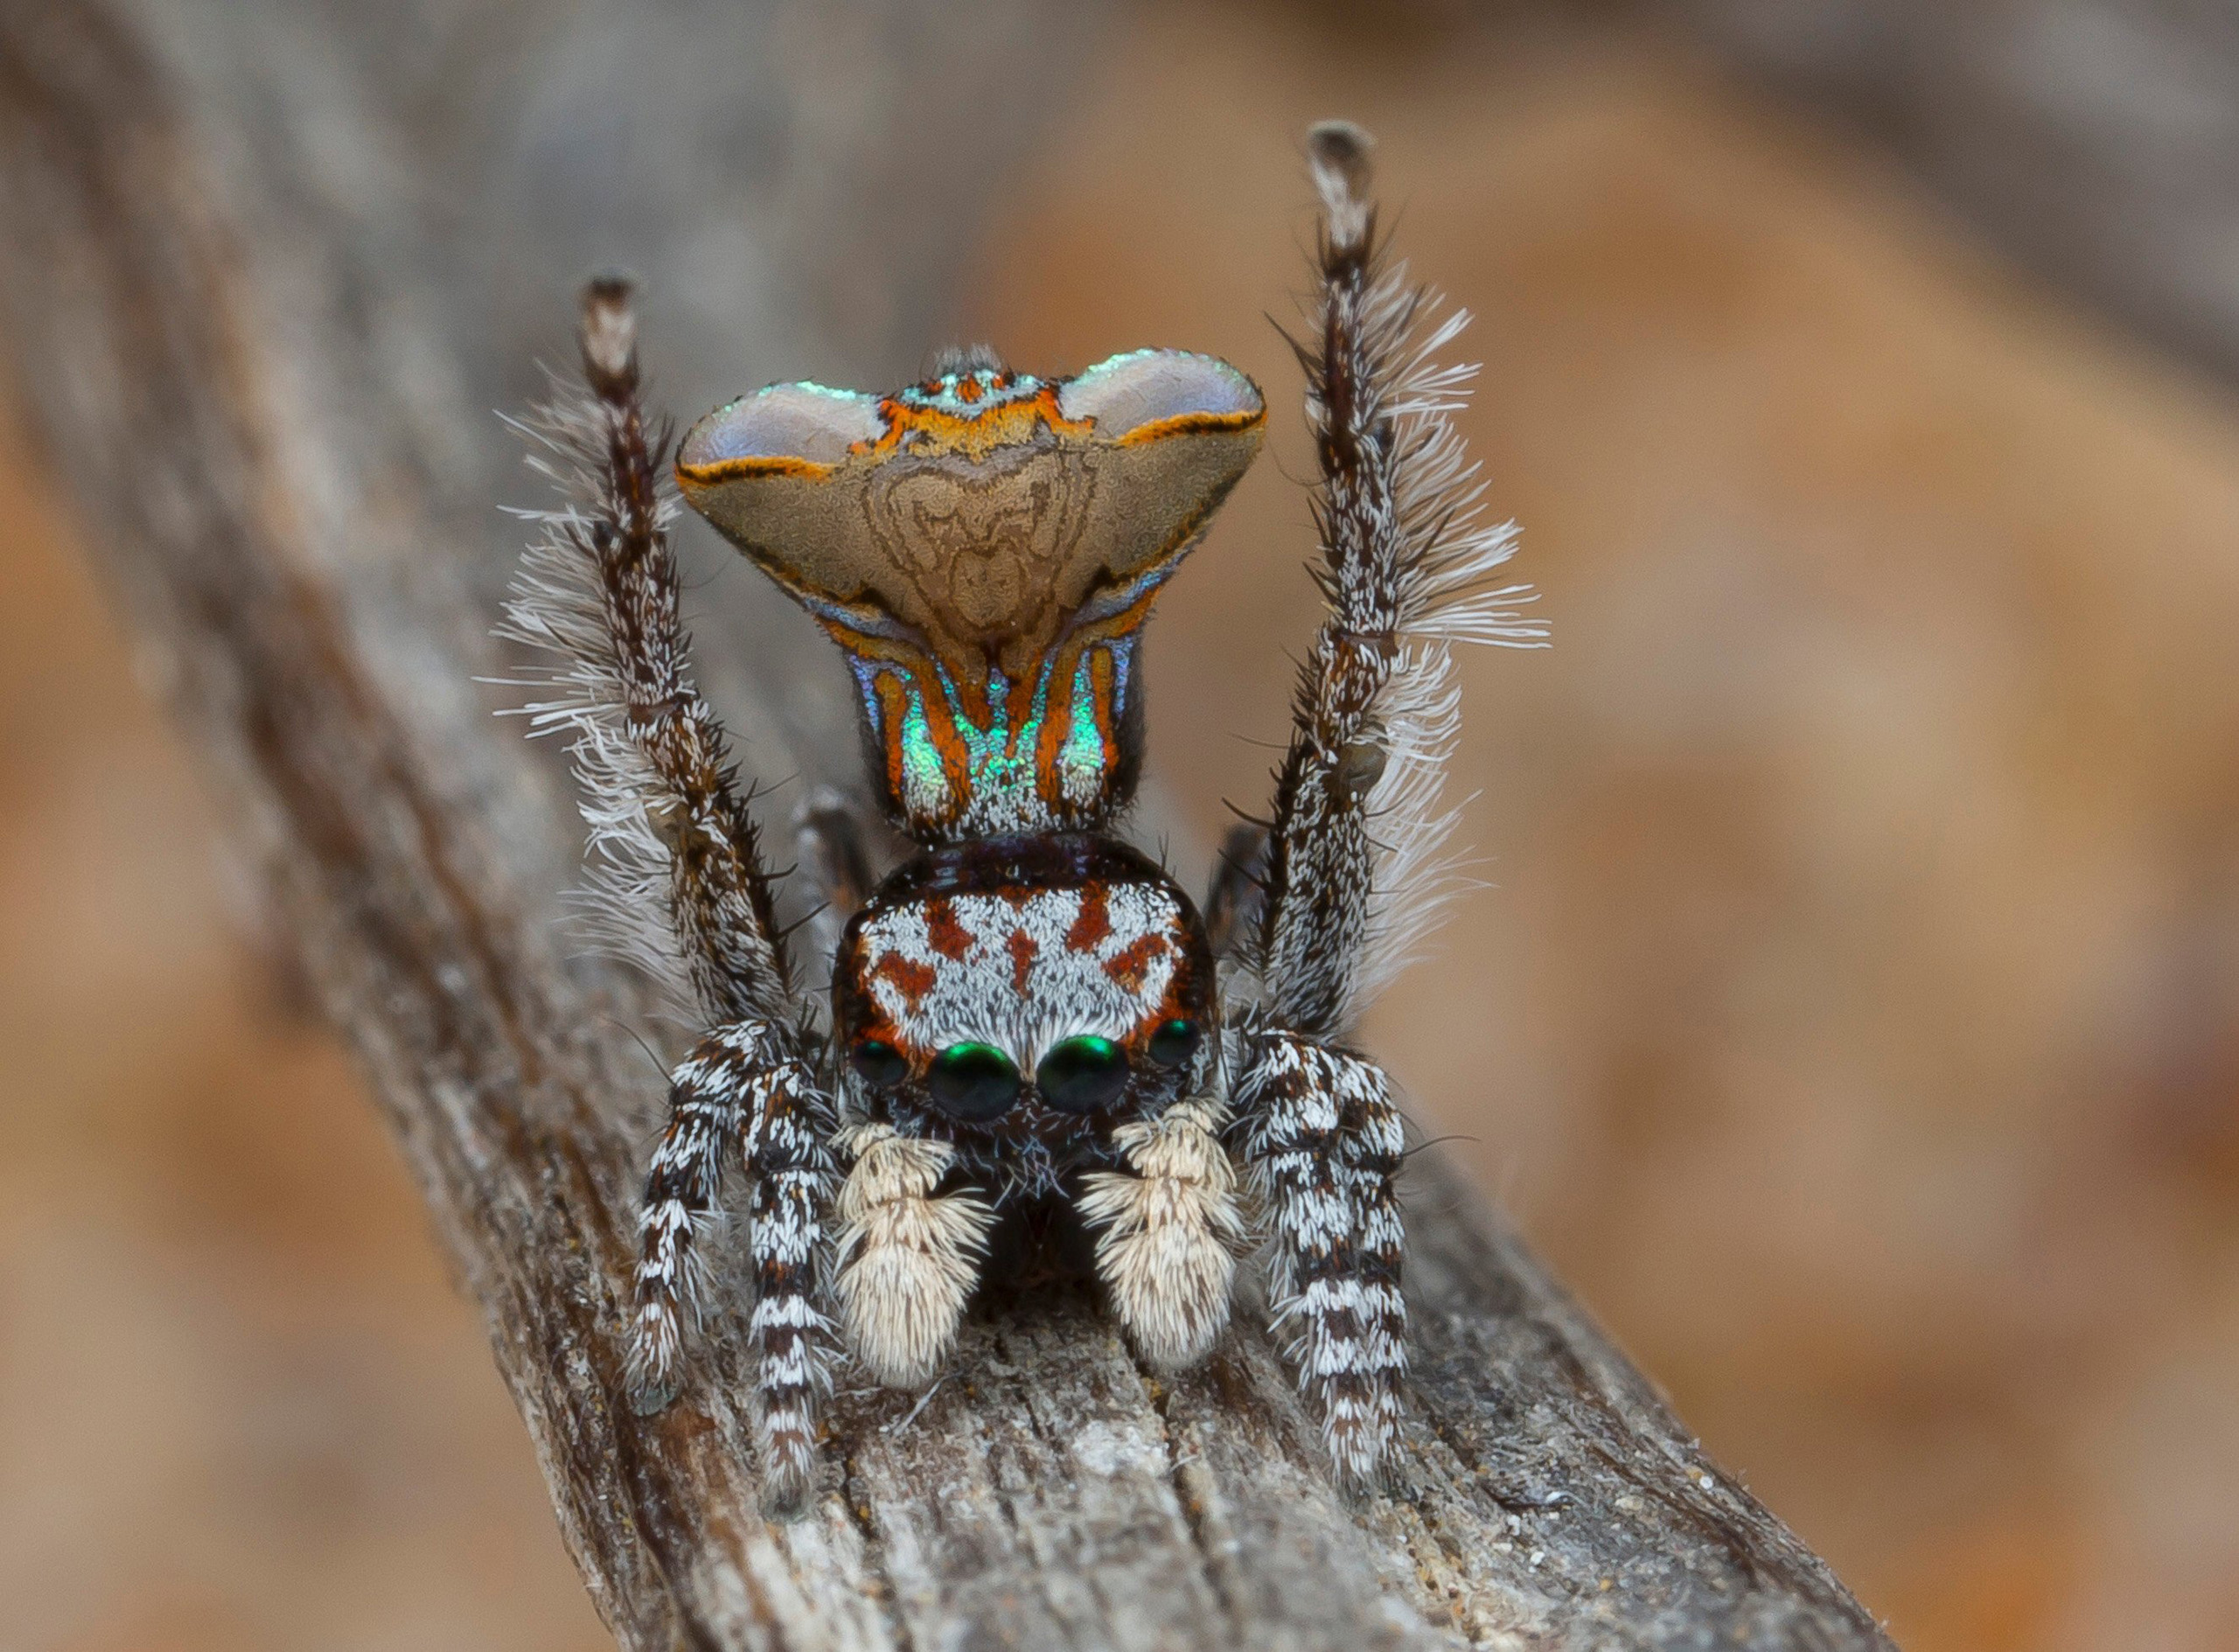 The name for Maratus Vespa comes from the generic name for wasps, a reference to the pattern on the spider's abdomen, which looks like a wasp's face. M. Vespa performs an elaborate mating  dance, which uses the iridescent patches in the center of the fan to attract the attention of a female.